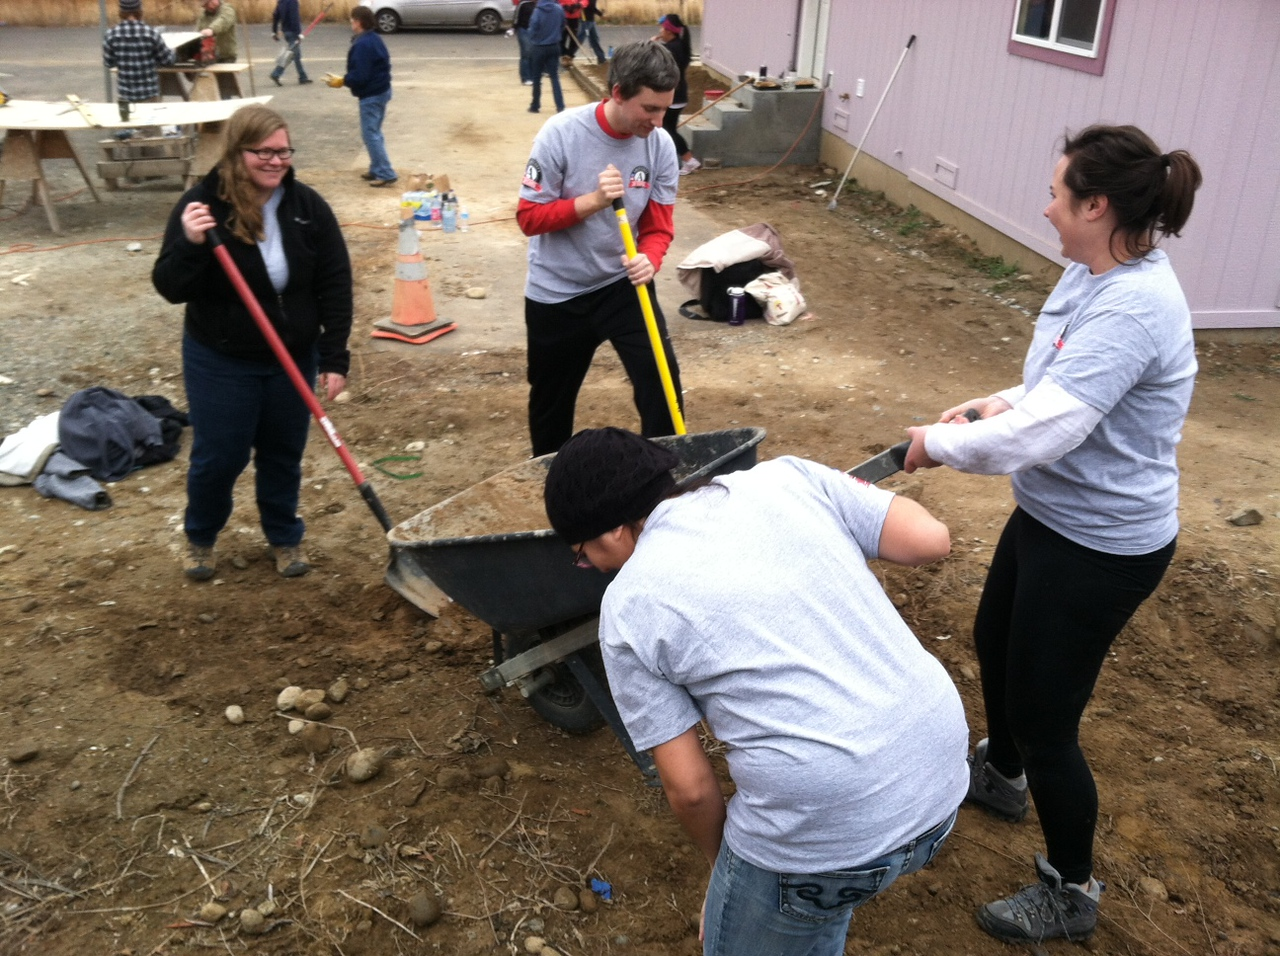 (left to right) Jesuit Volunteer Corps Northwest AmeriCorps members Corbin Weaver, James Wykowski, Jordan Matulis, and Caitlin Cervenka work with Habitat for Humanity on the foundation of a new home in Wenatchee, Washington on MLK Day 2014.